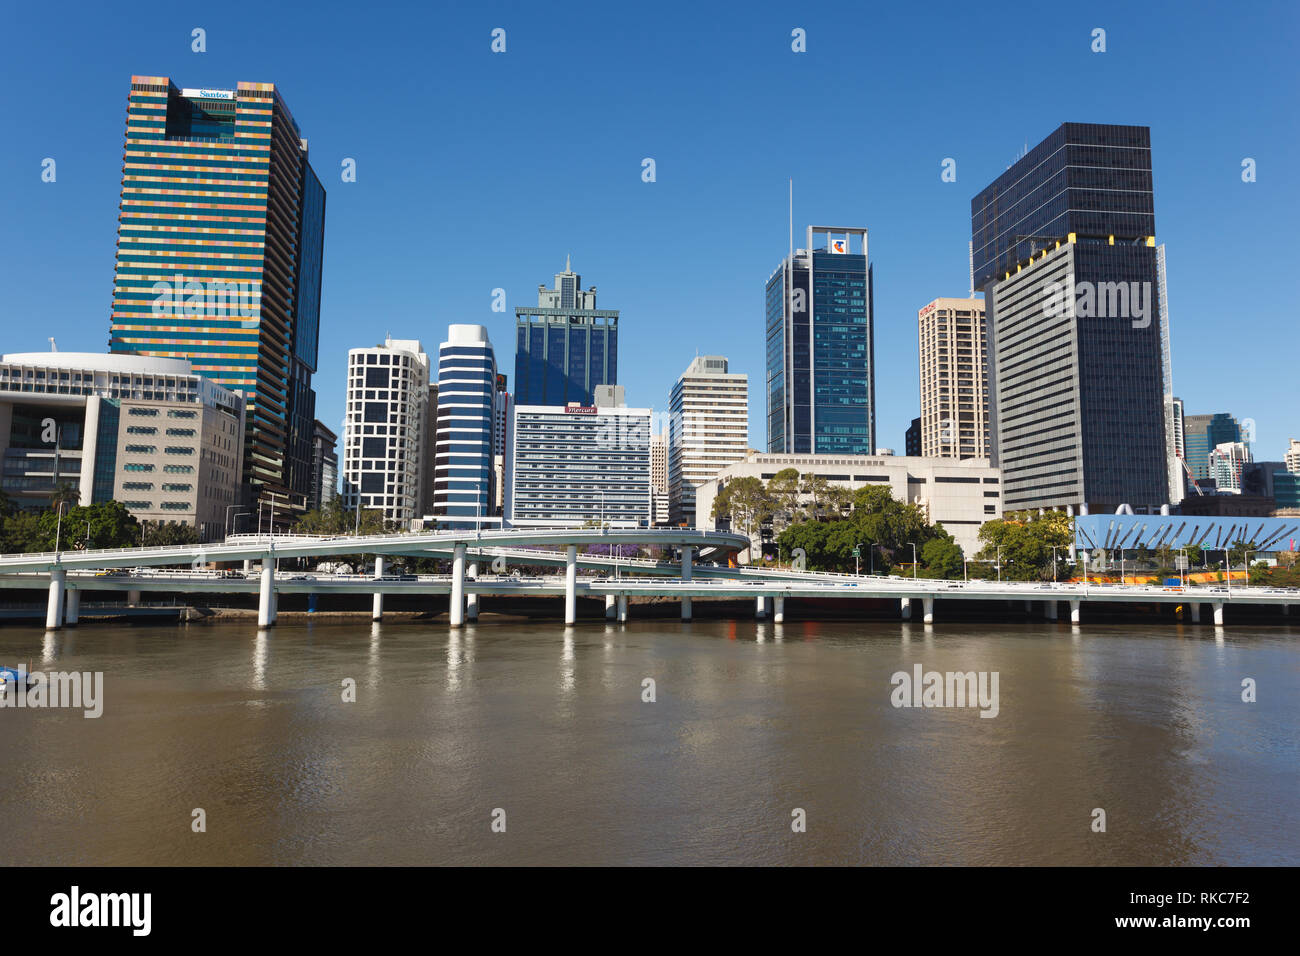 Modern skyline and elevated highway of Brisbane, Australia across the water on a sunny day - Stock Image